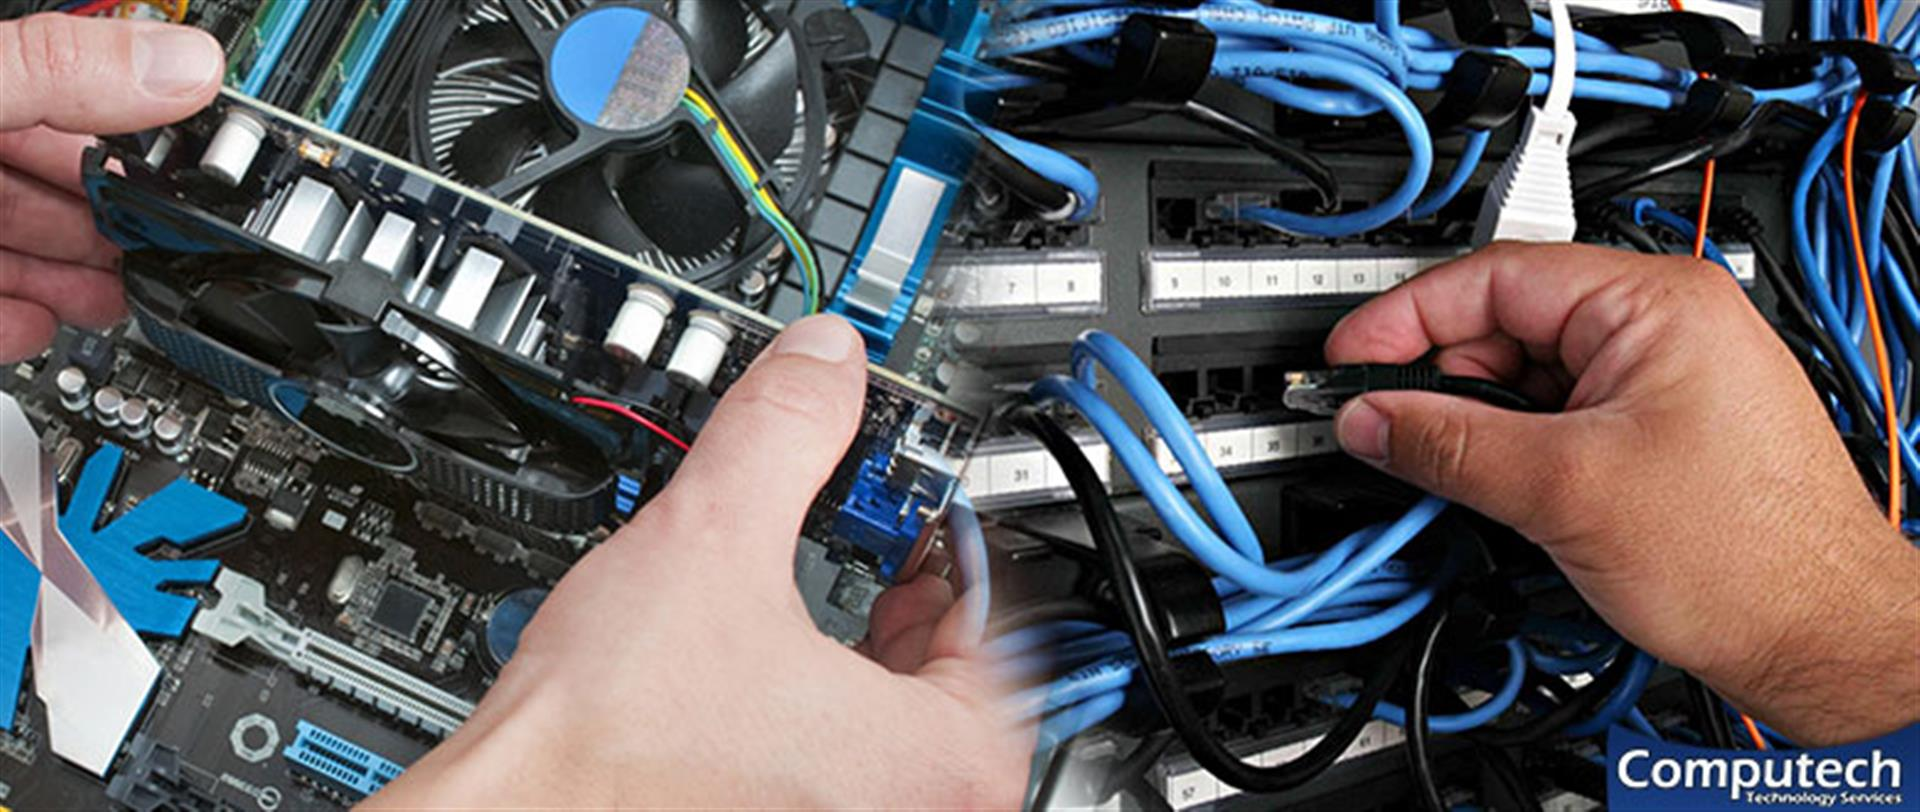 Hiram Georgia On Site Computer PC & Printer Repairs, Networks, Voice & Data Cabling Solutions